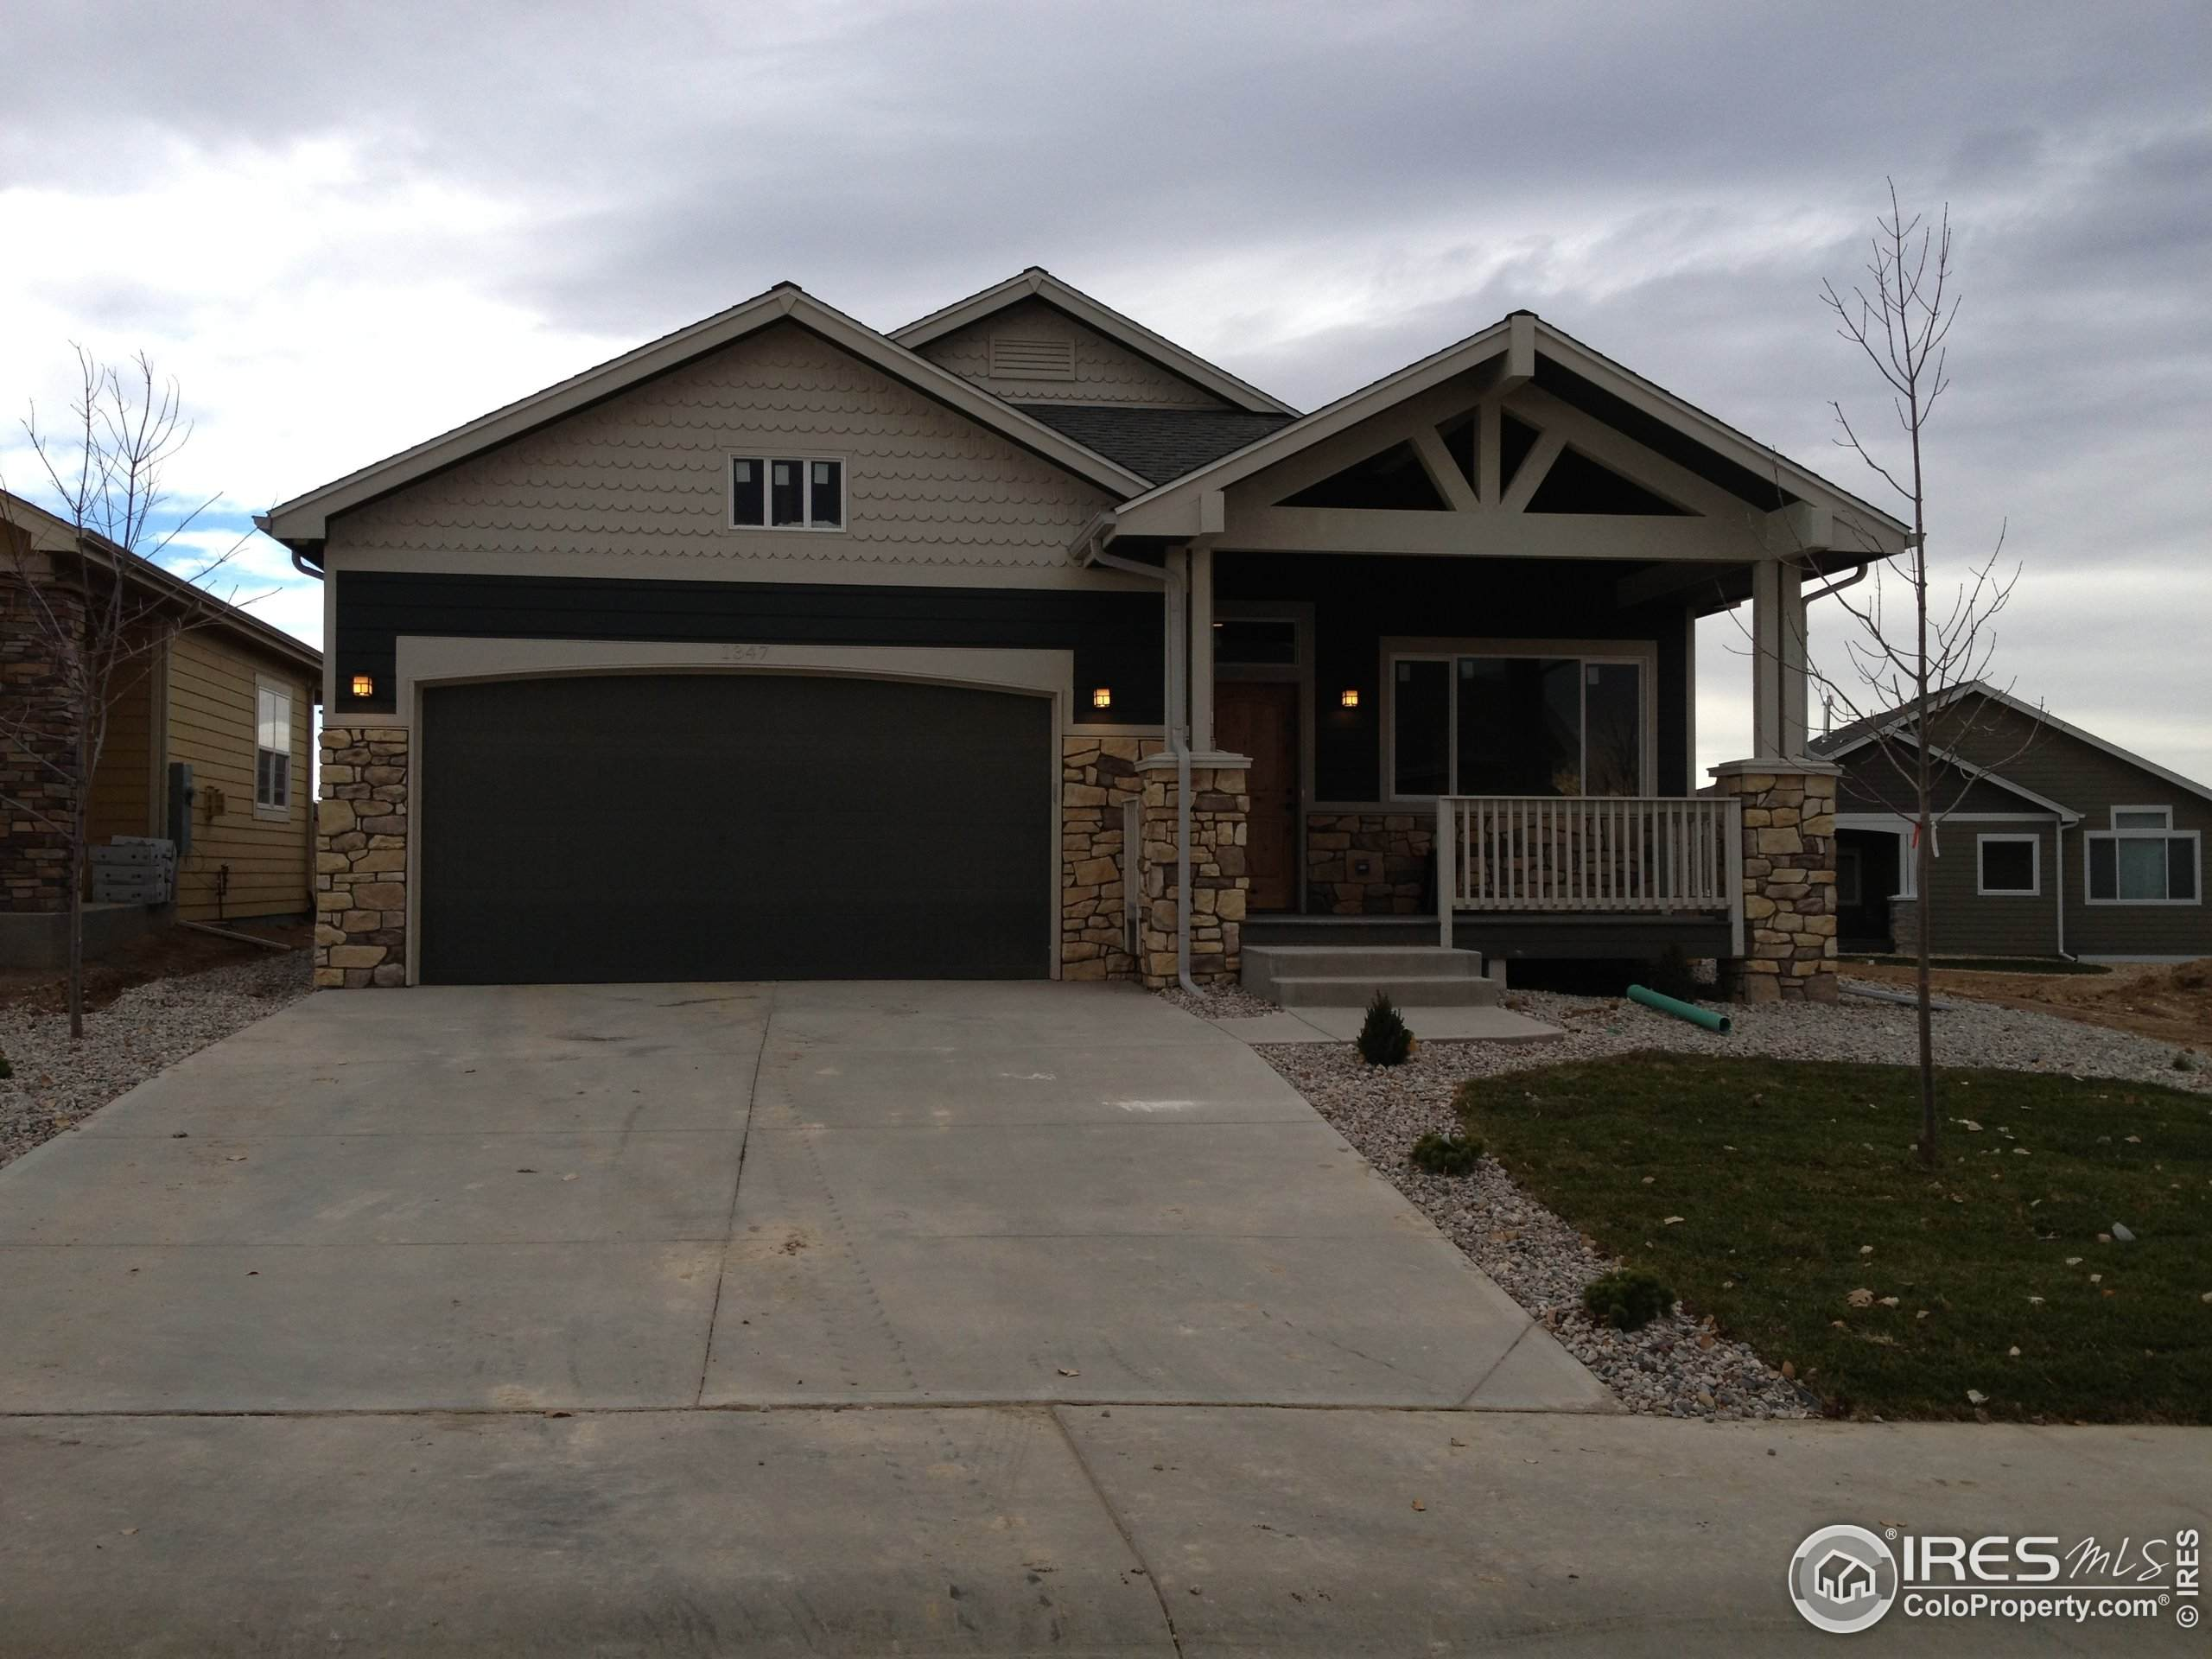 1089 Fall River Ct, Estes Park, CO 80517 (MLS #938024) :: J2 Real Estate Group at Remax Alliance